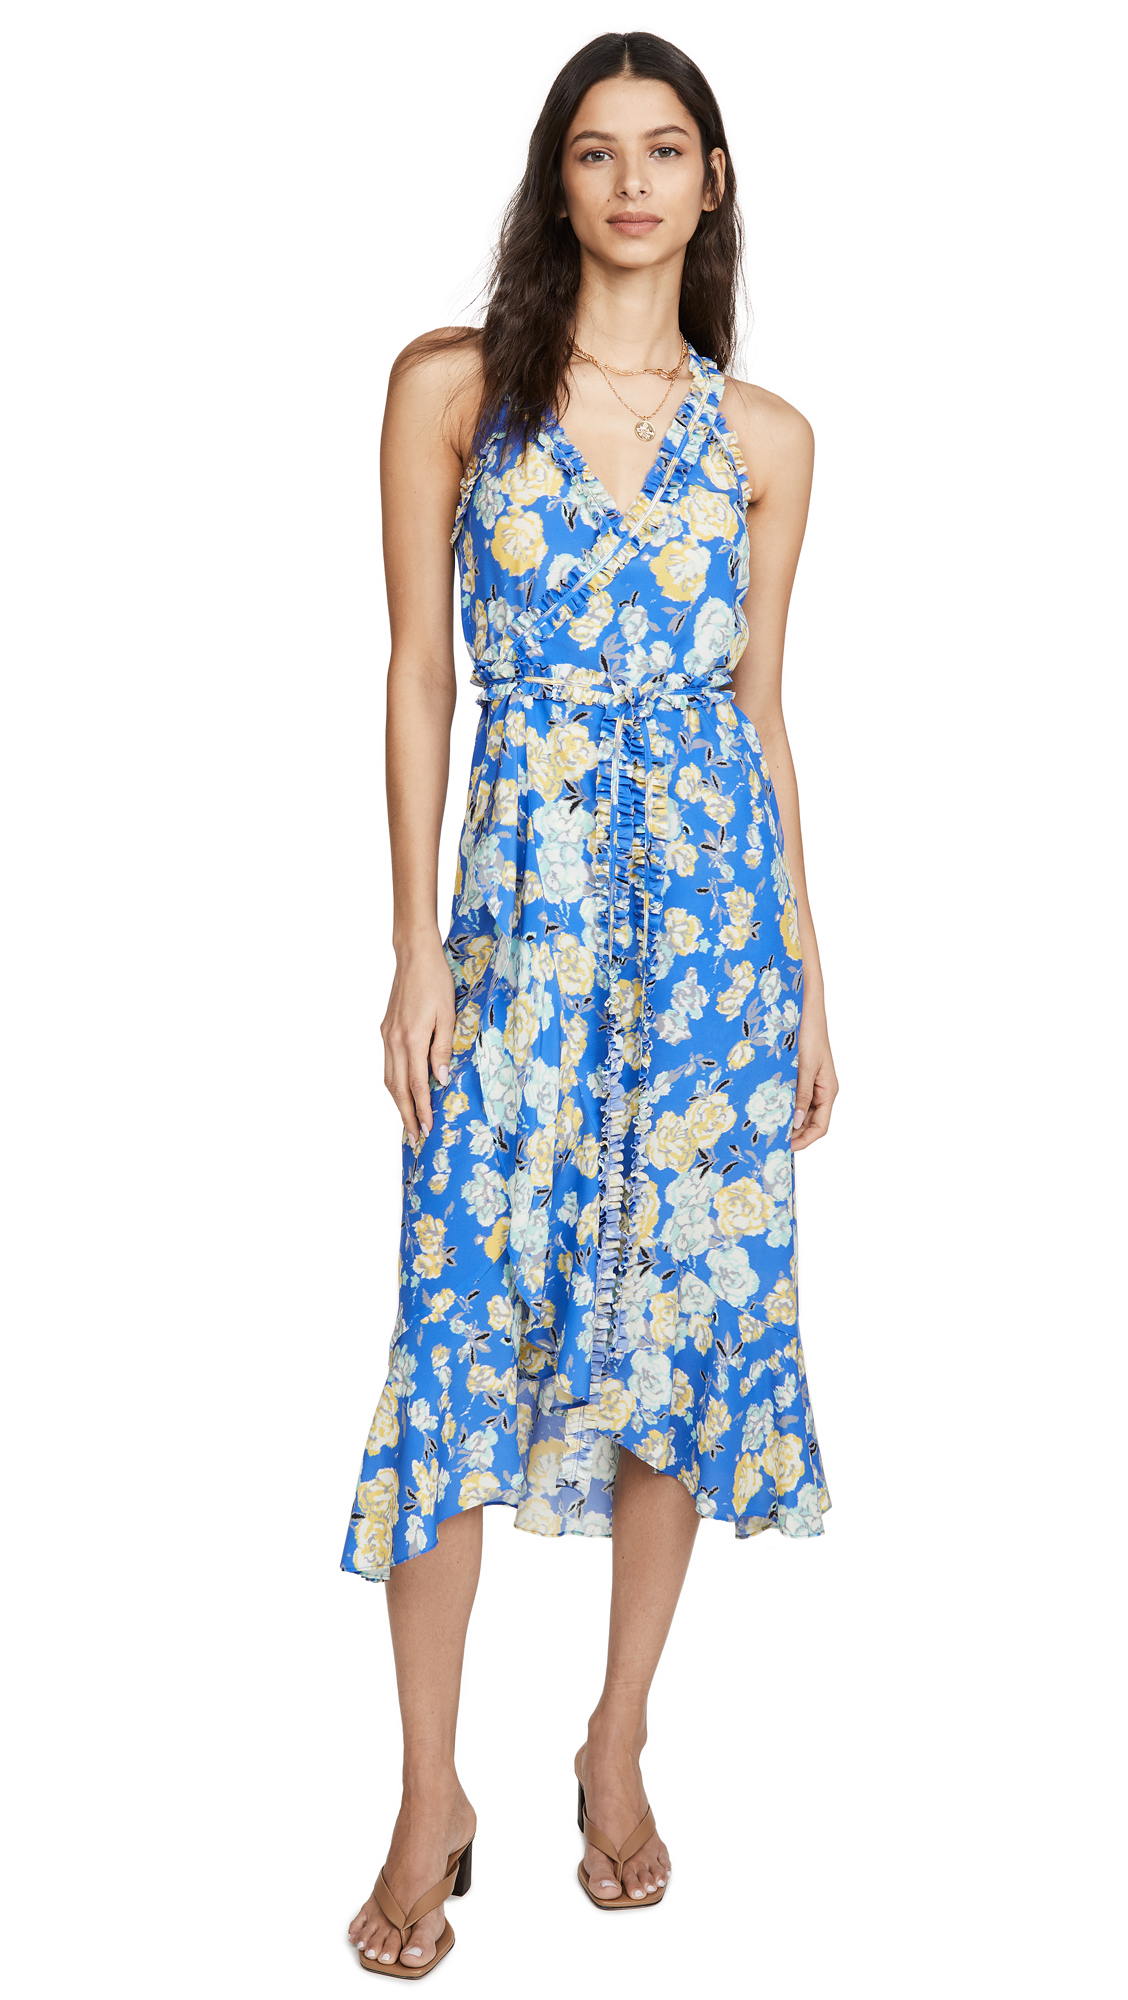 Jason Wu Floral Sleeveless Wrap Dress - 30% Off Sale